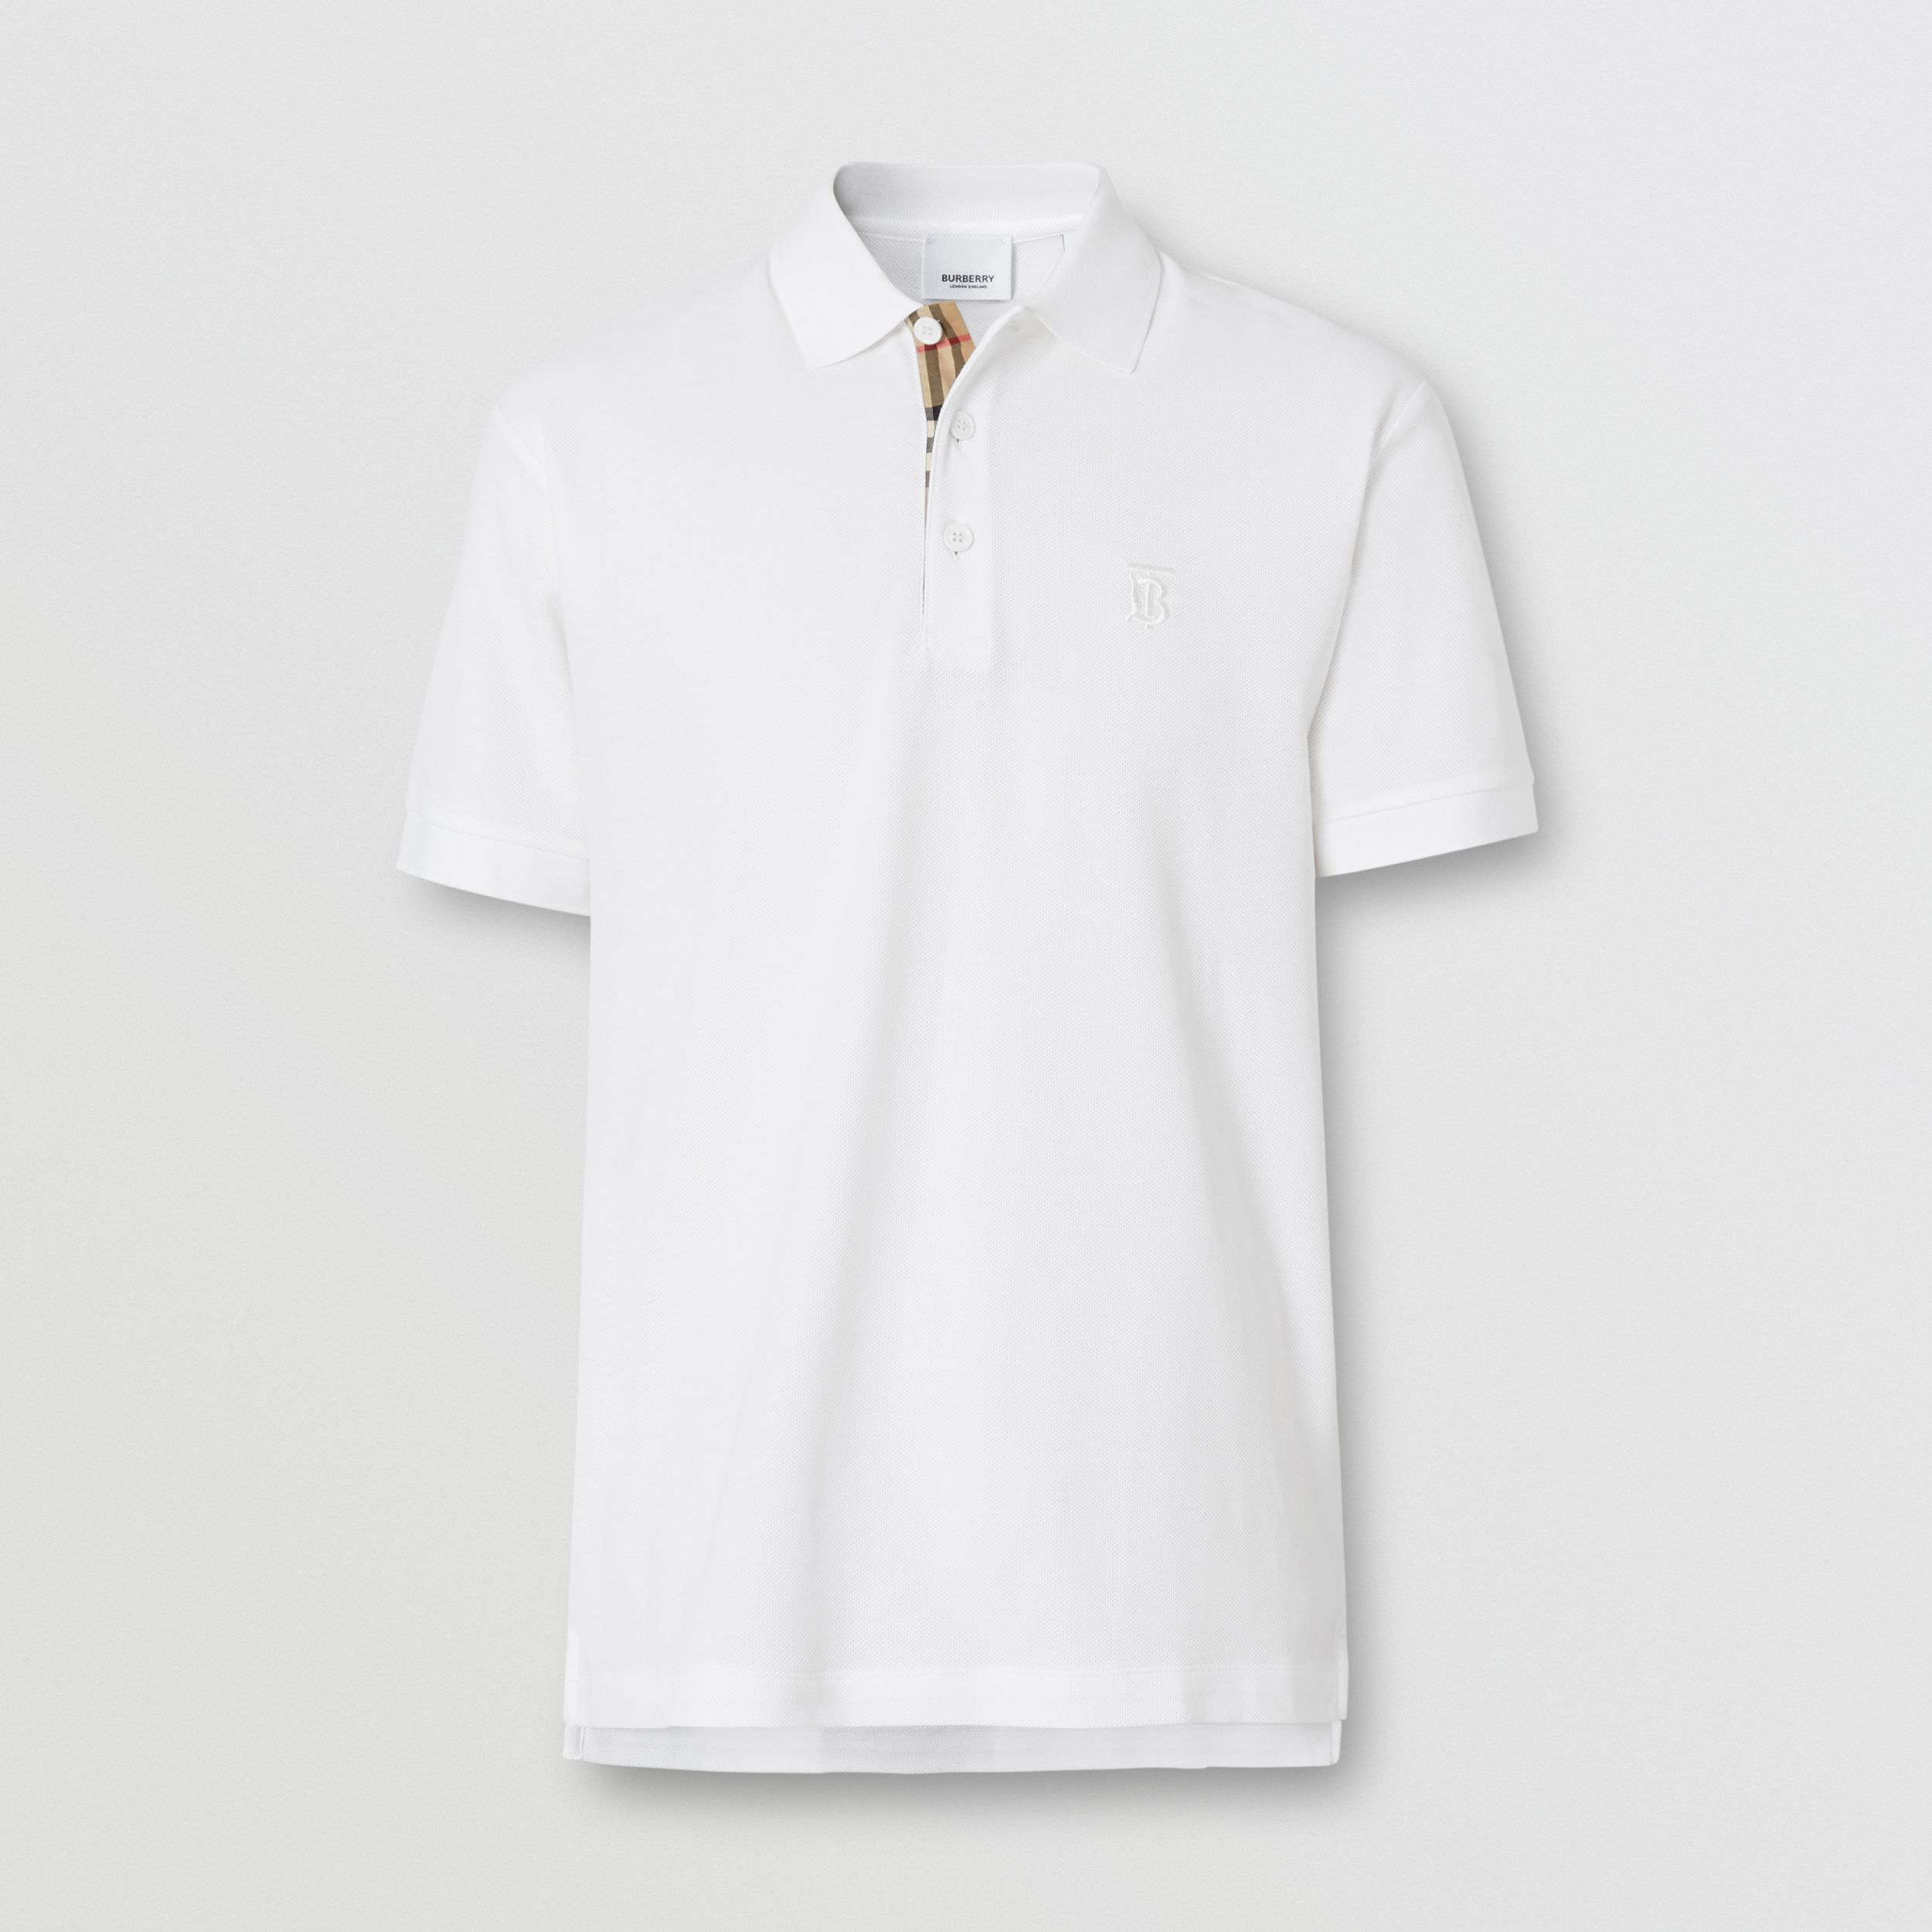 Monogram Motif Cotton Piqué Polo Shirt in White - Men | Burberry United Kingdom - 4